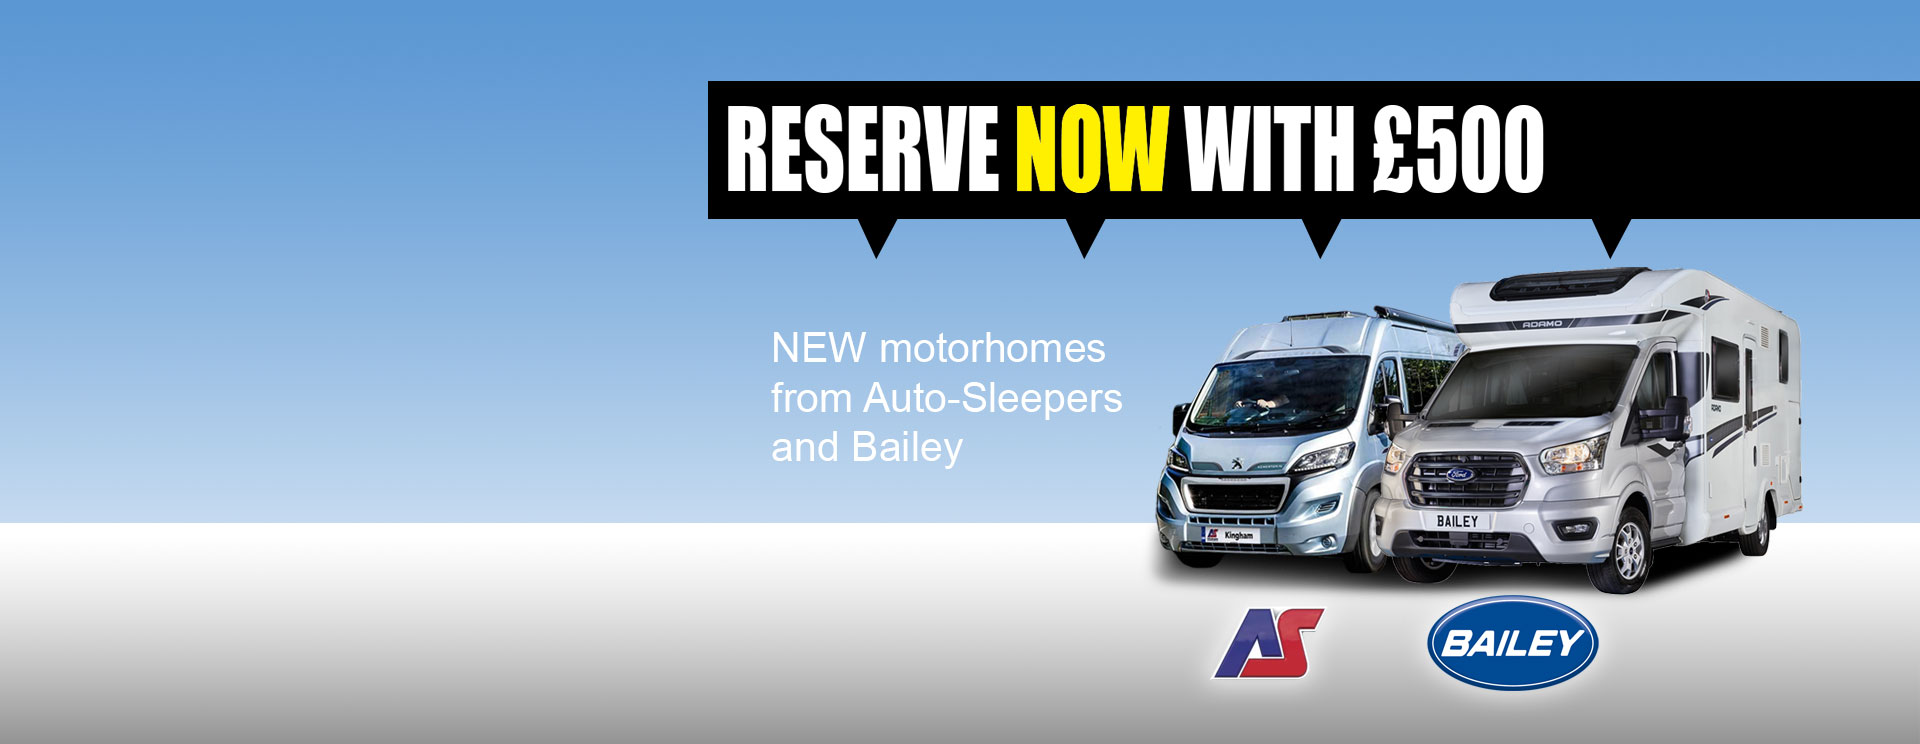 Reserve your Auto-Sleepers or Bailey Motorhome